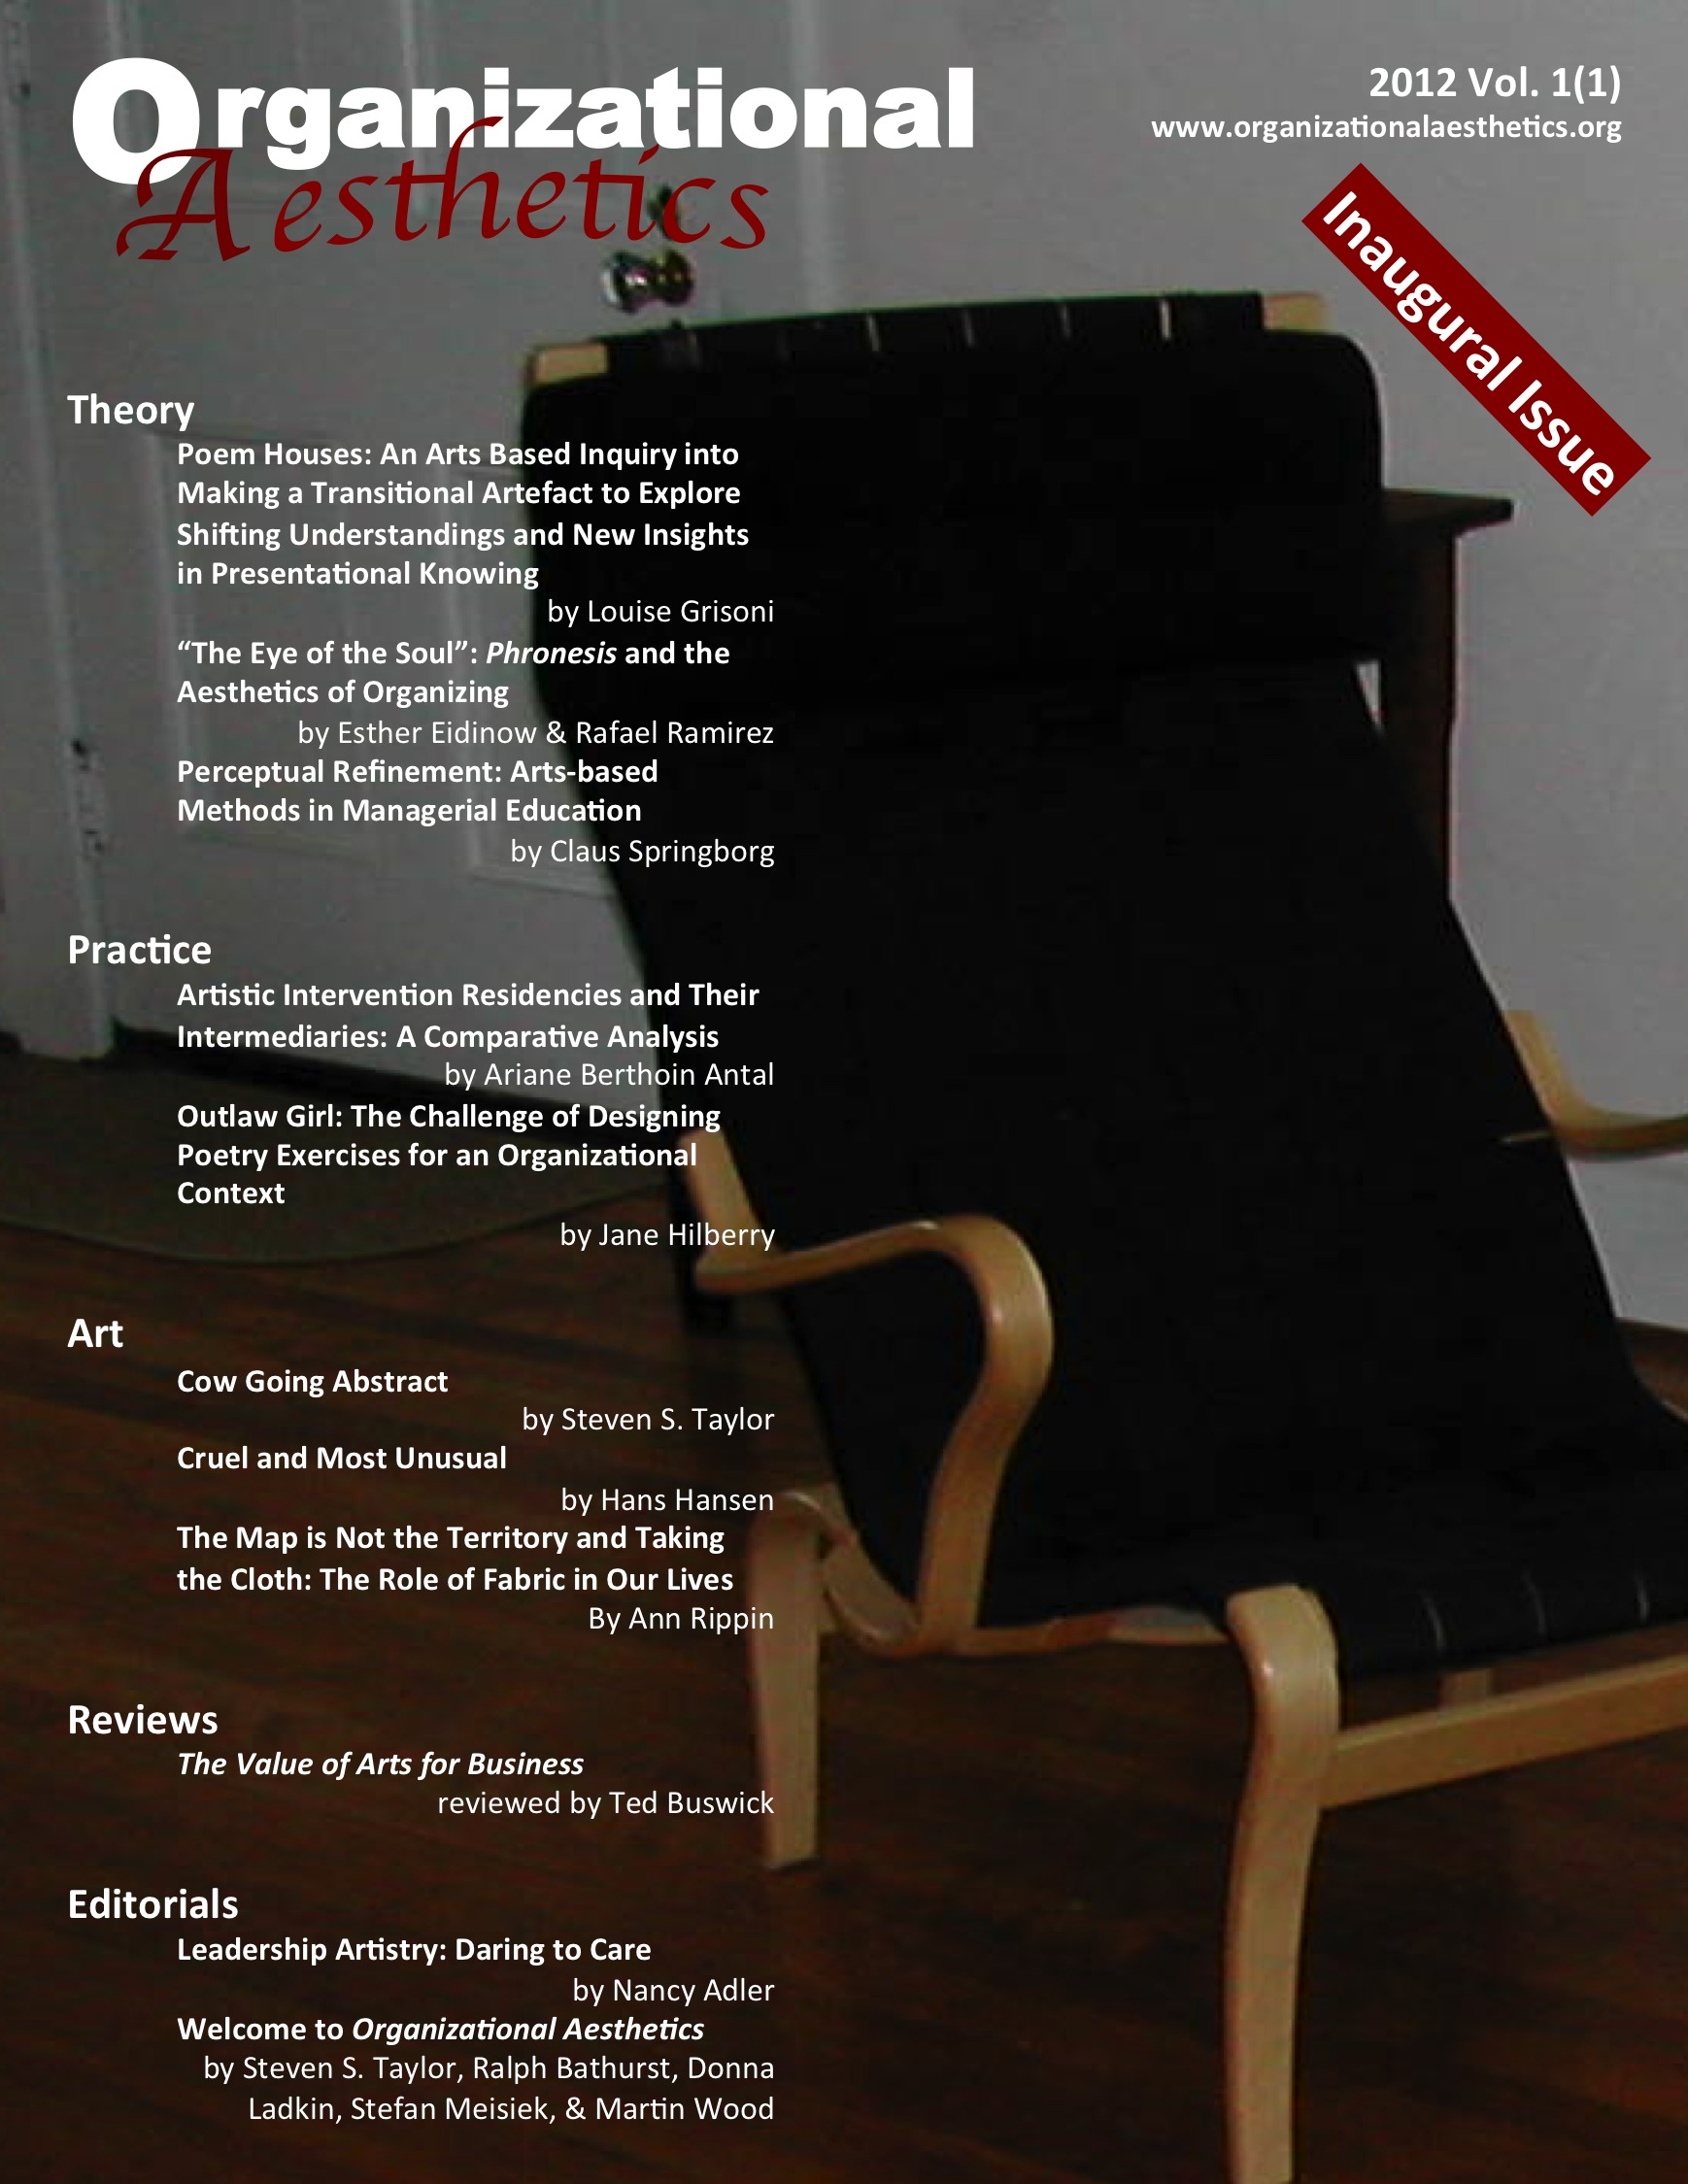 Organizational Aesthetics Cover Issue Vol. 1(1)